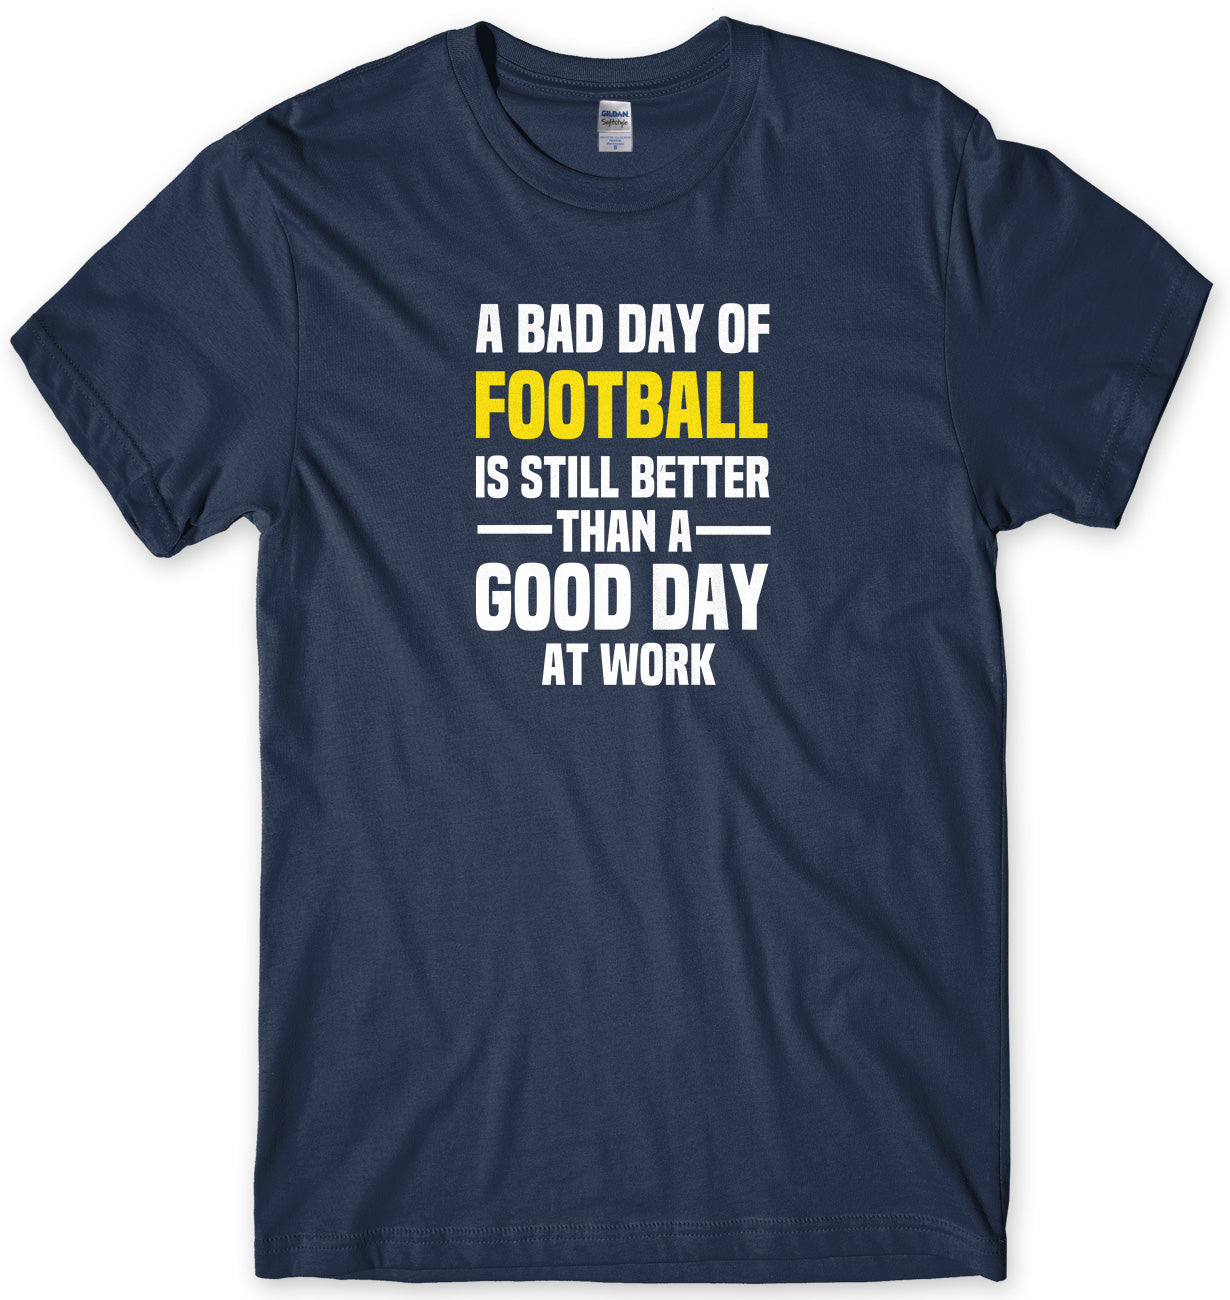 A BAD DAY OF FOOTBALL IS STILL BETTER THAN A GOOD DAY AT WORK MENS FUNNY SLOGAN UNISEX T-SHIRT - StreetSide Surgeons